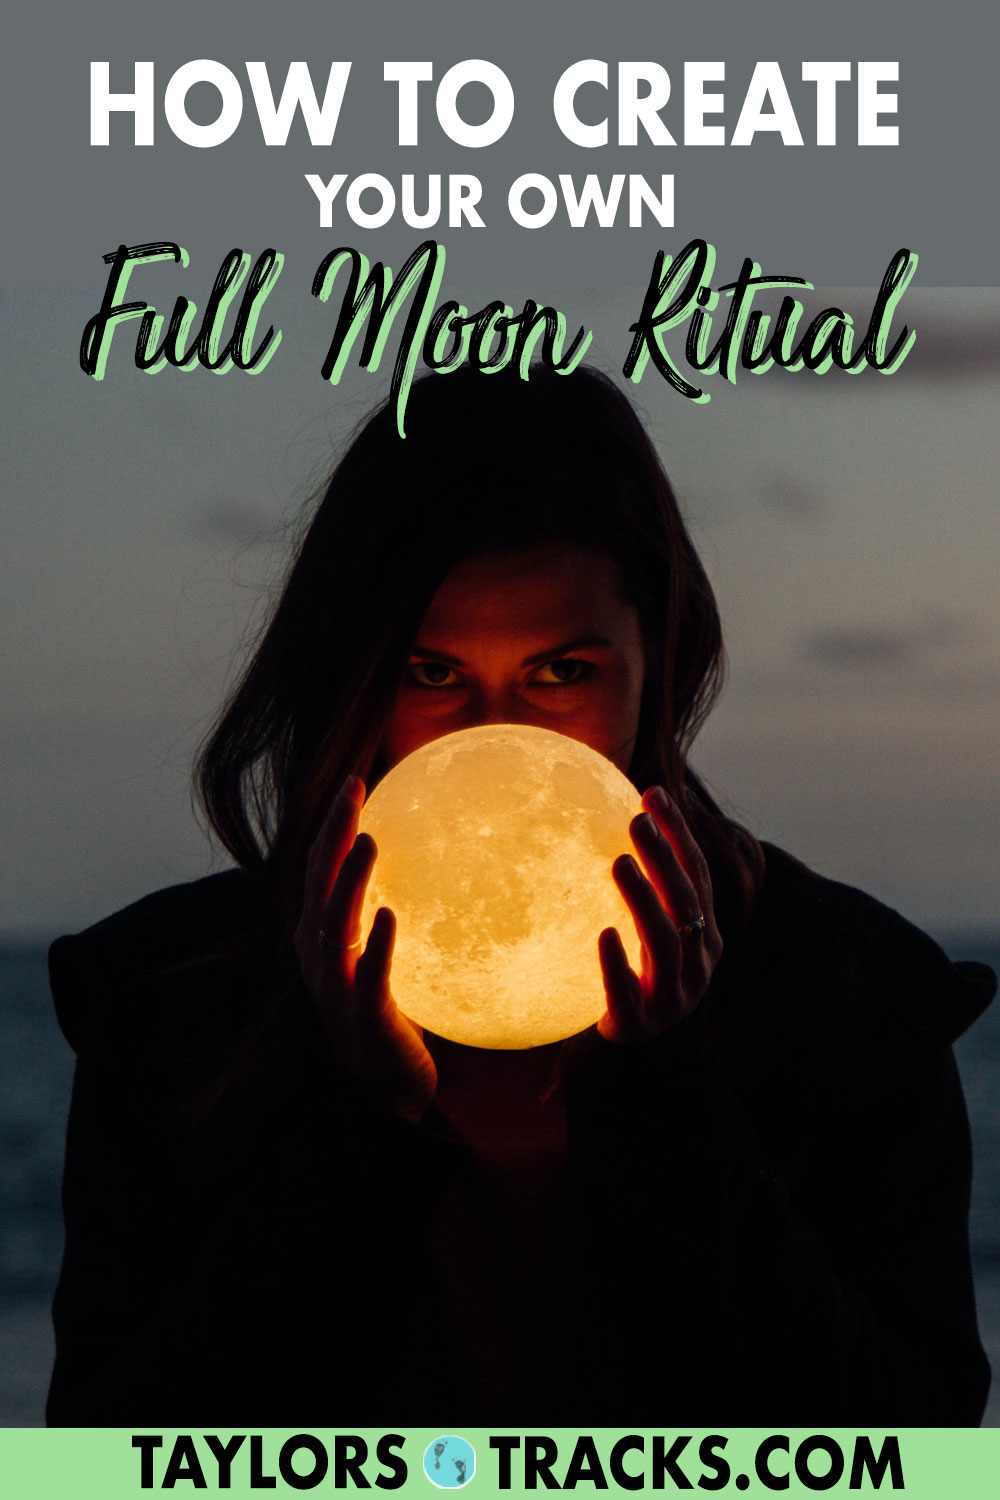 Practice this full moon ritual with friends or by yourself for a full moon ceremony that is powerful, fun and easy to do. Learn how to let go, manifest with the moon and release what is no longer serving you. Click to find out how to perform your own full moon ritual!